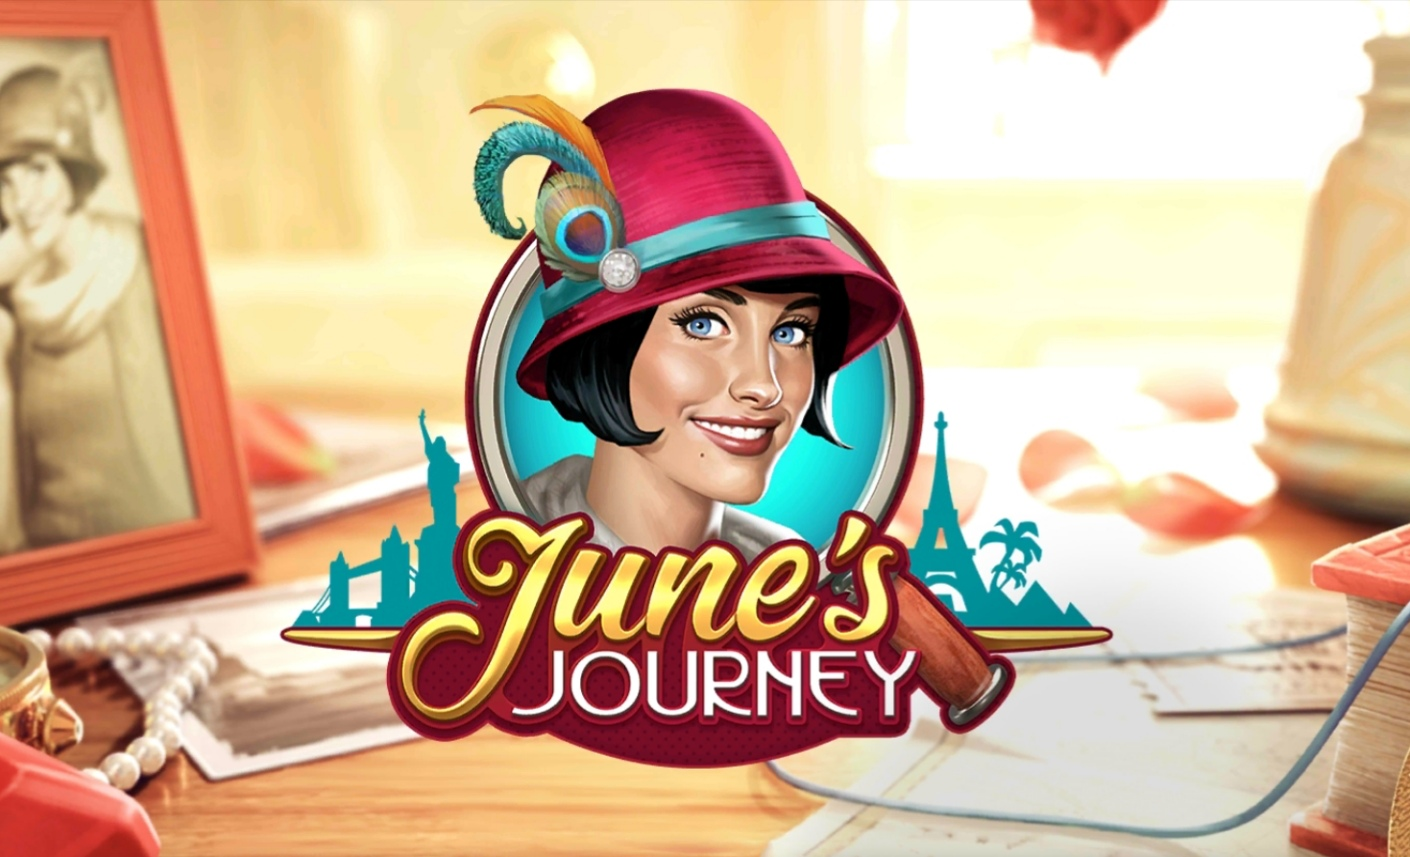 JuneS Journey Pc